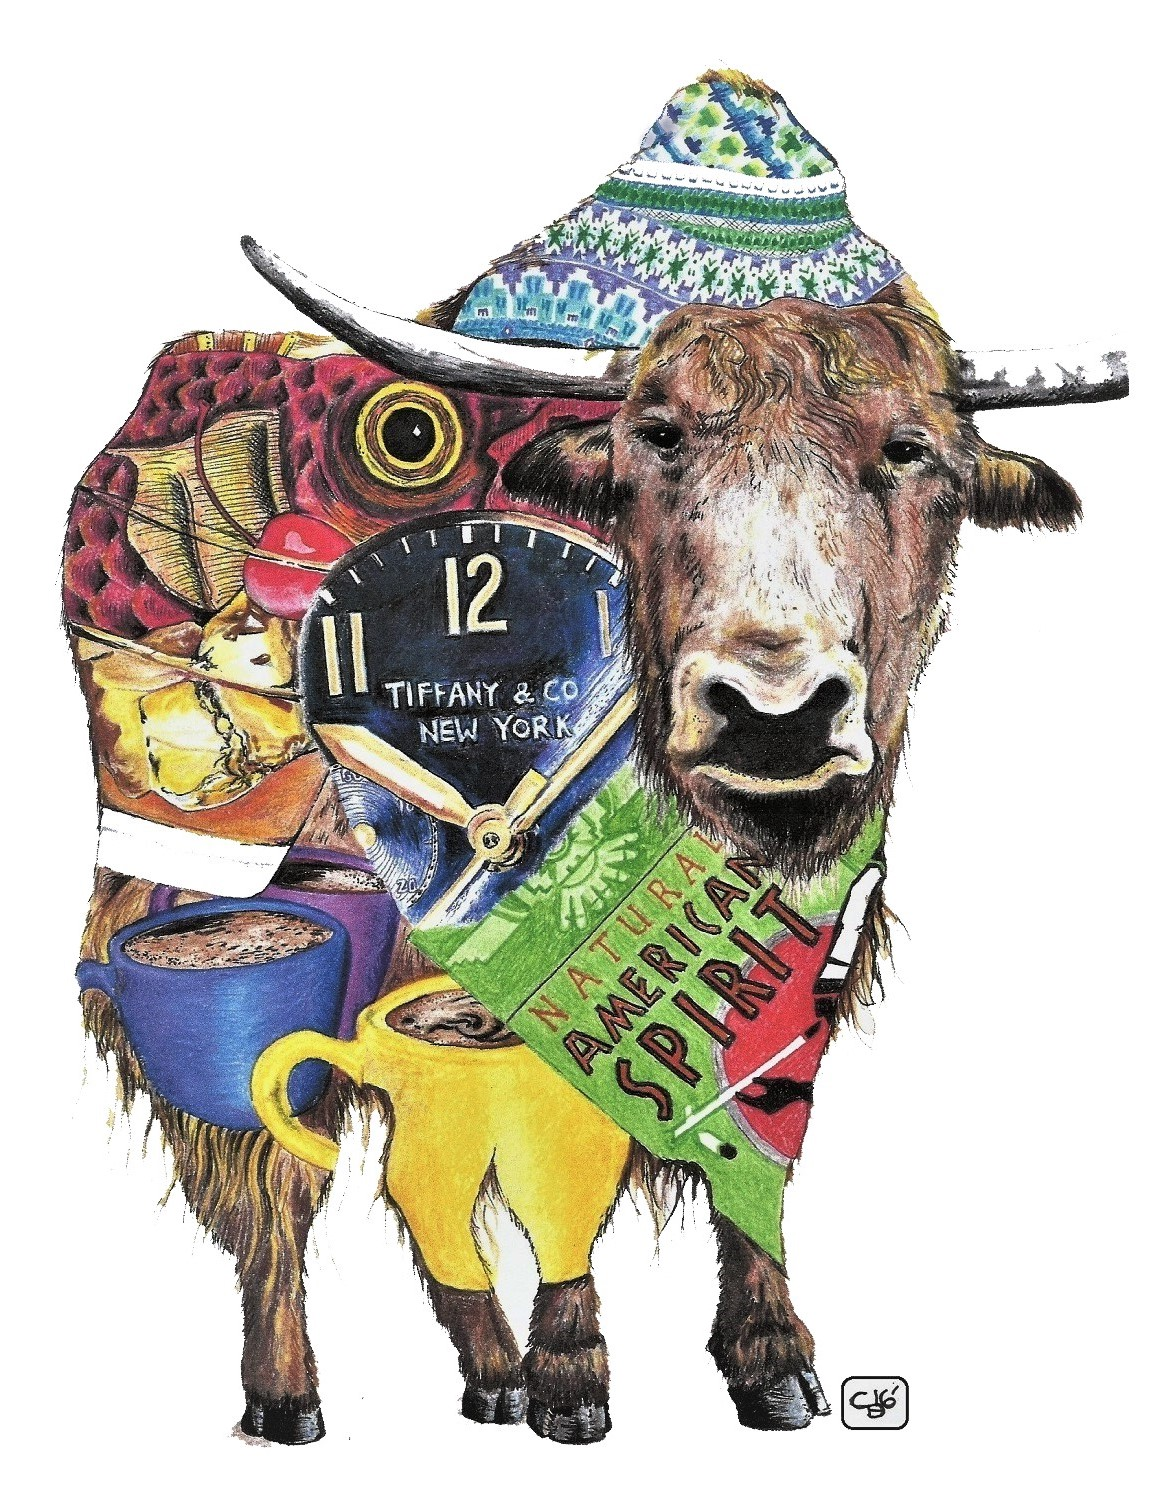 Yak, Objects, Drawing, Detail, Animal, Colored Pencil, Marker